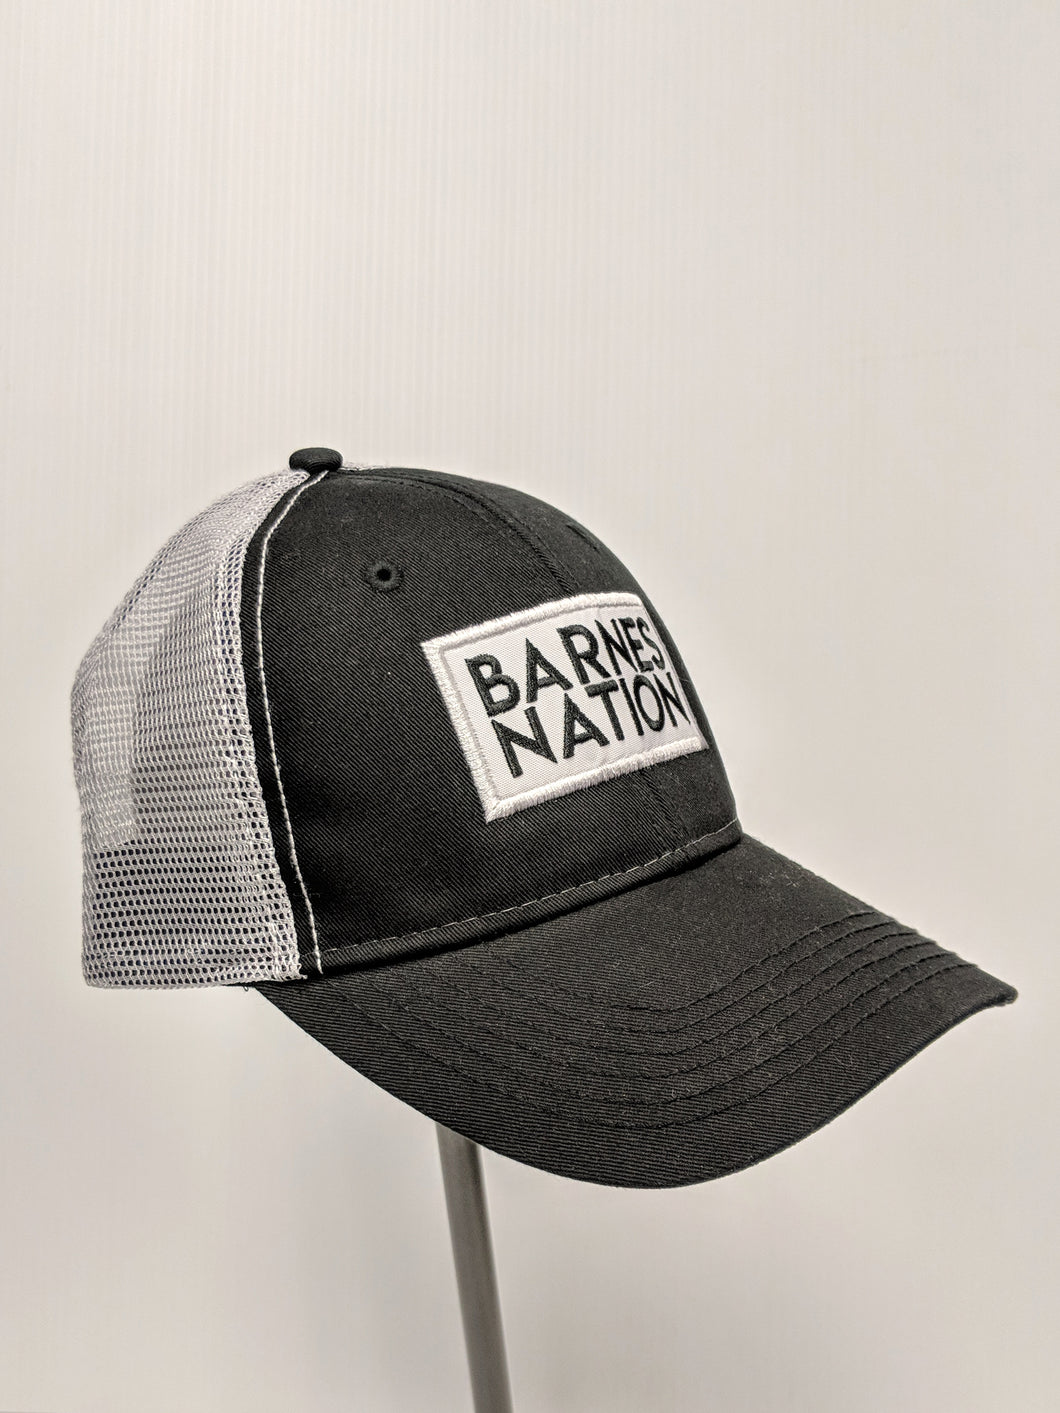 Box Logo Barnes Harley Davidson Motorcycle Trucker Hat in Vancouver Burnaby Richmond Coquitlam Surrey Langley Motorcycle Riding Gear Apparel Lifestyle